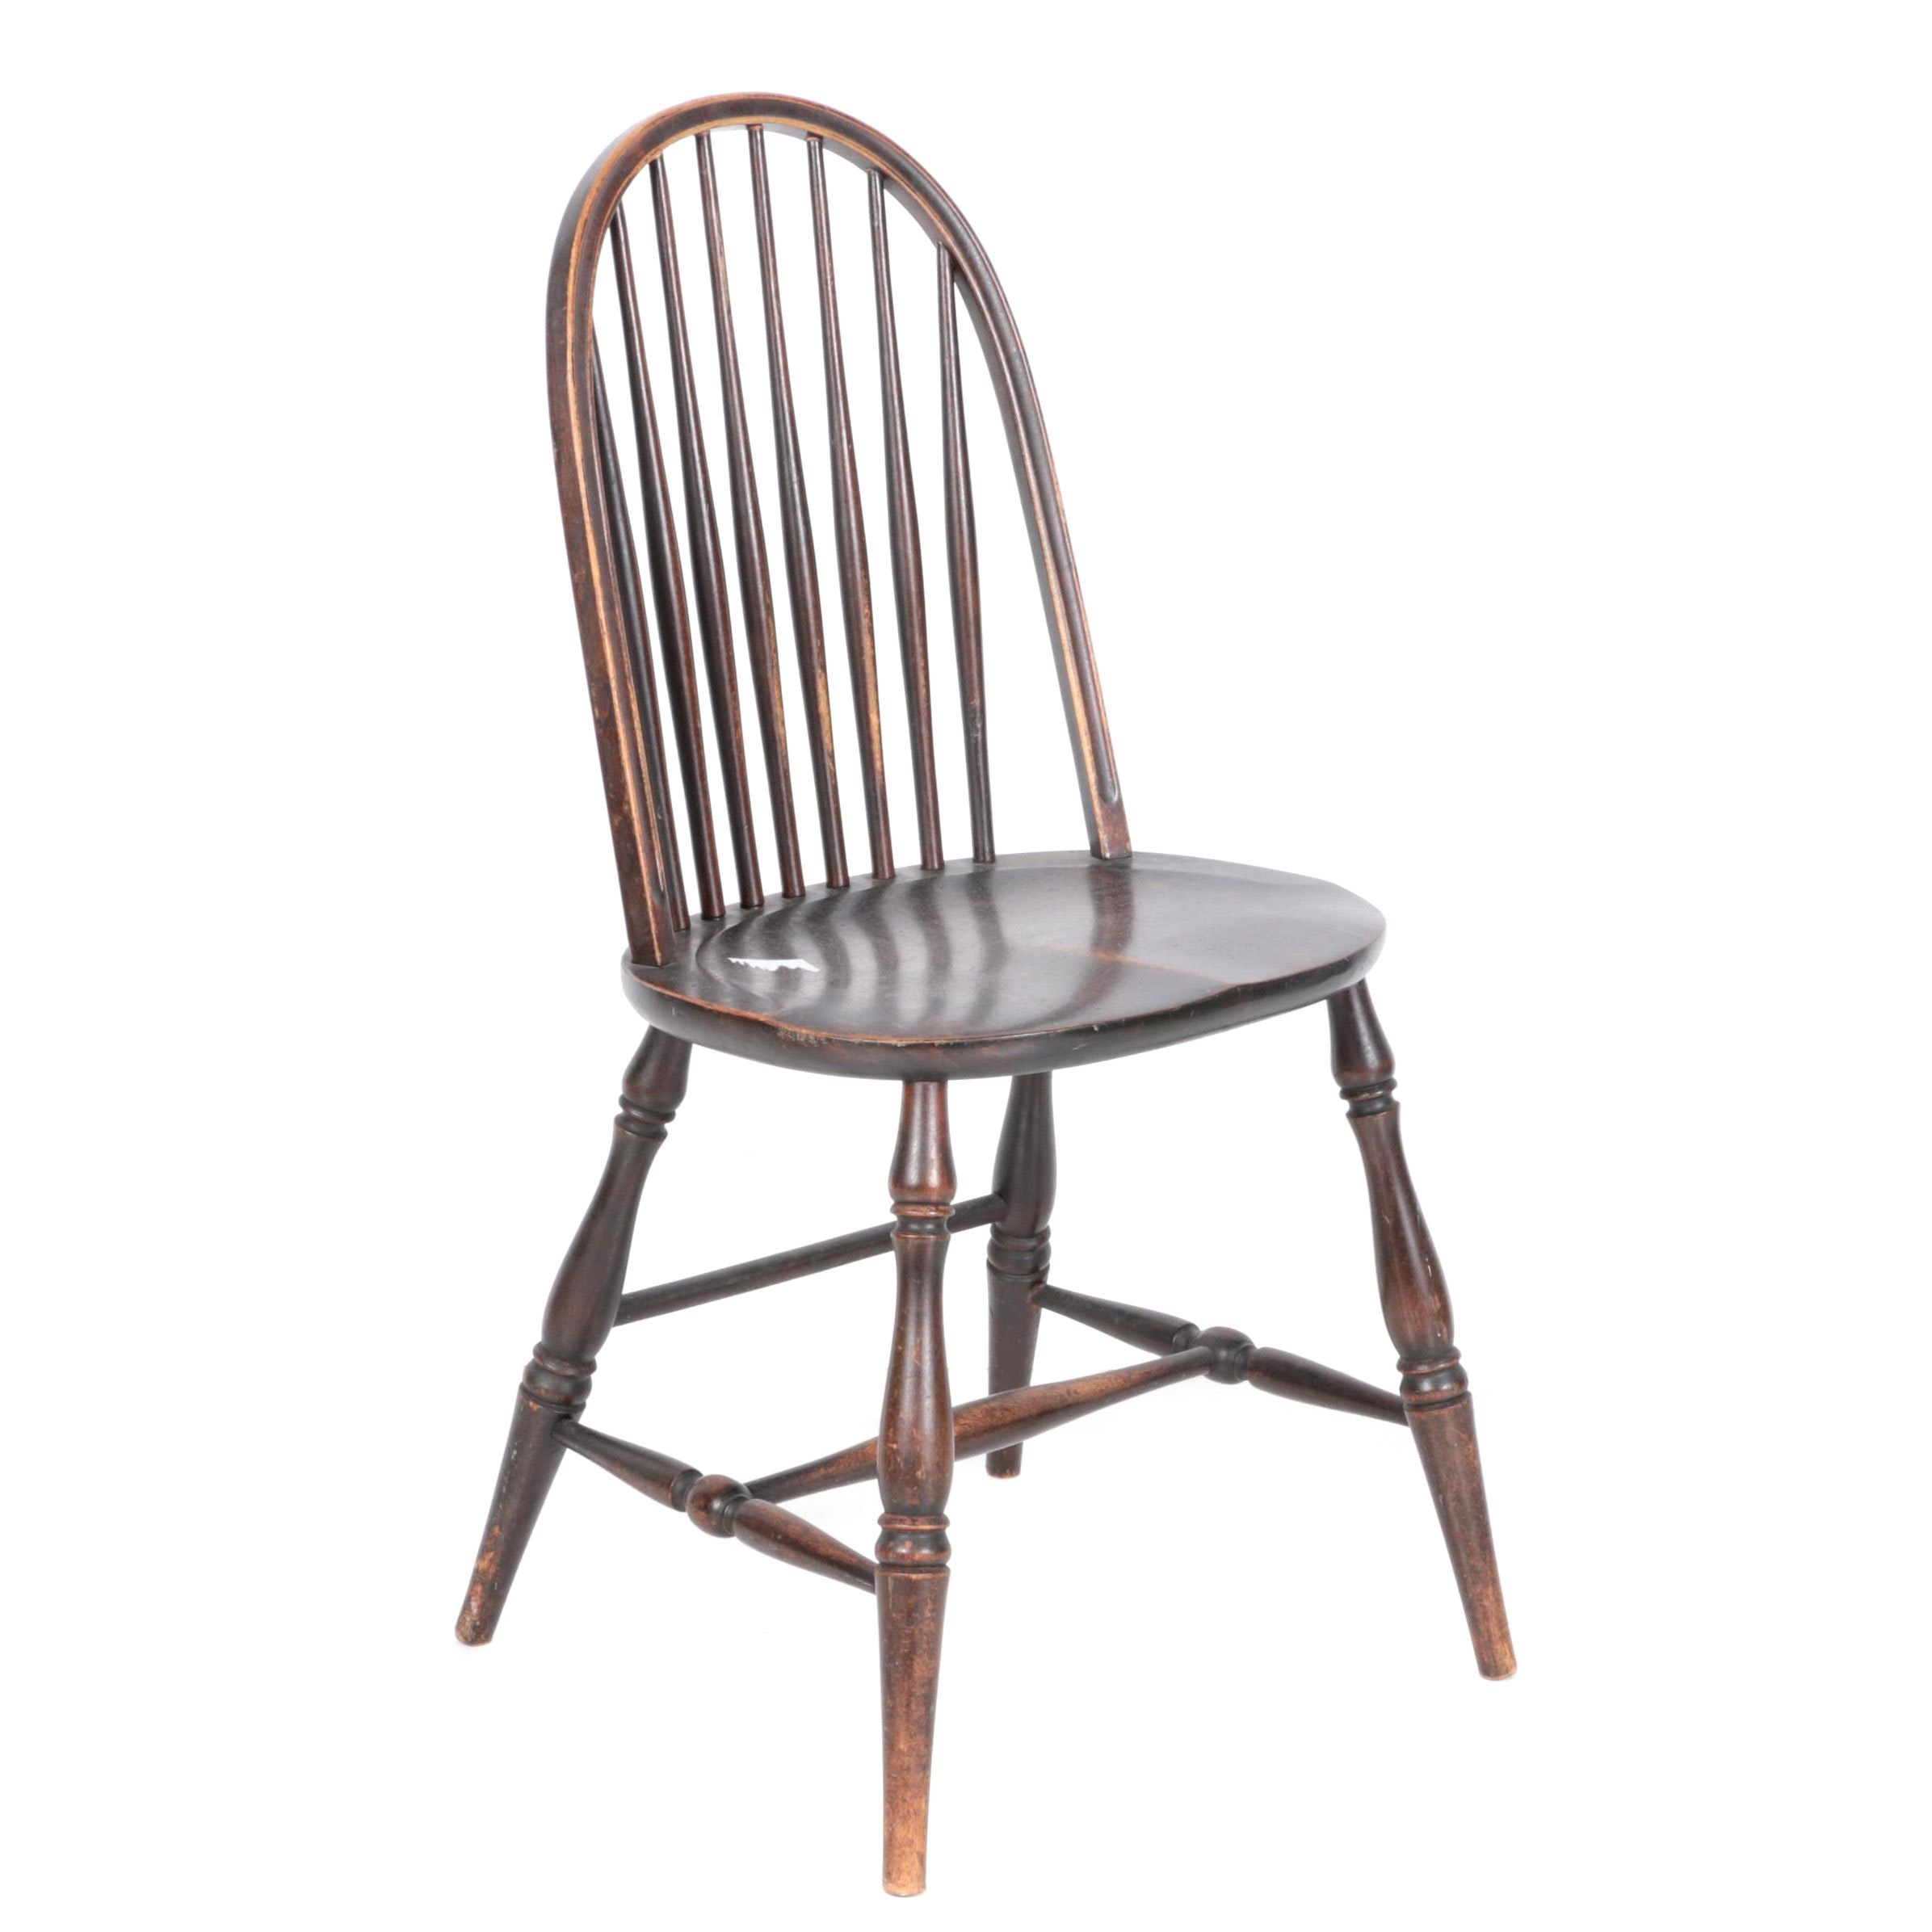 Vintage Windsor Style Side Chair